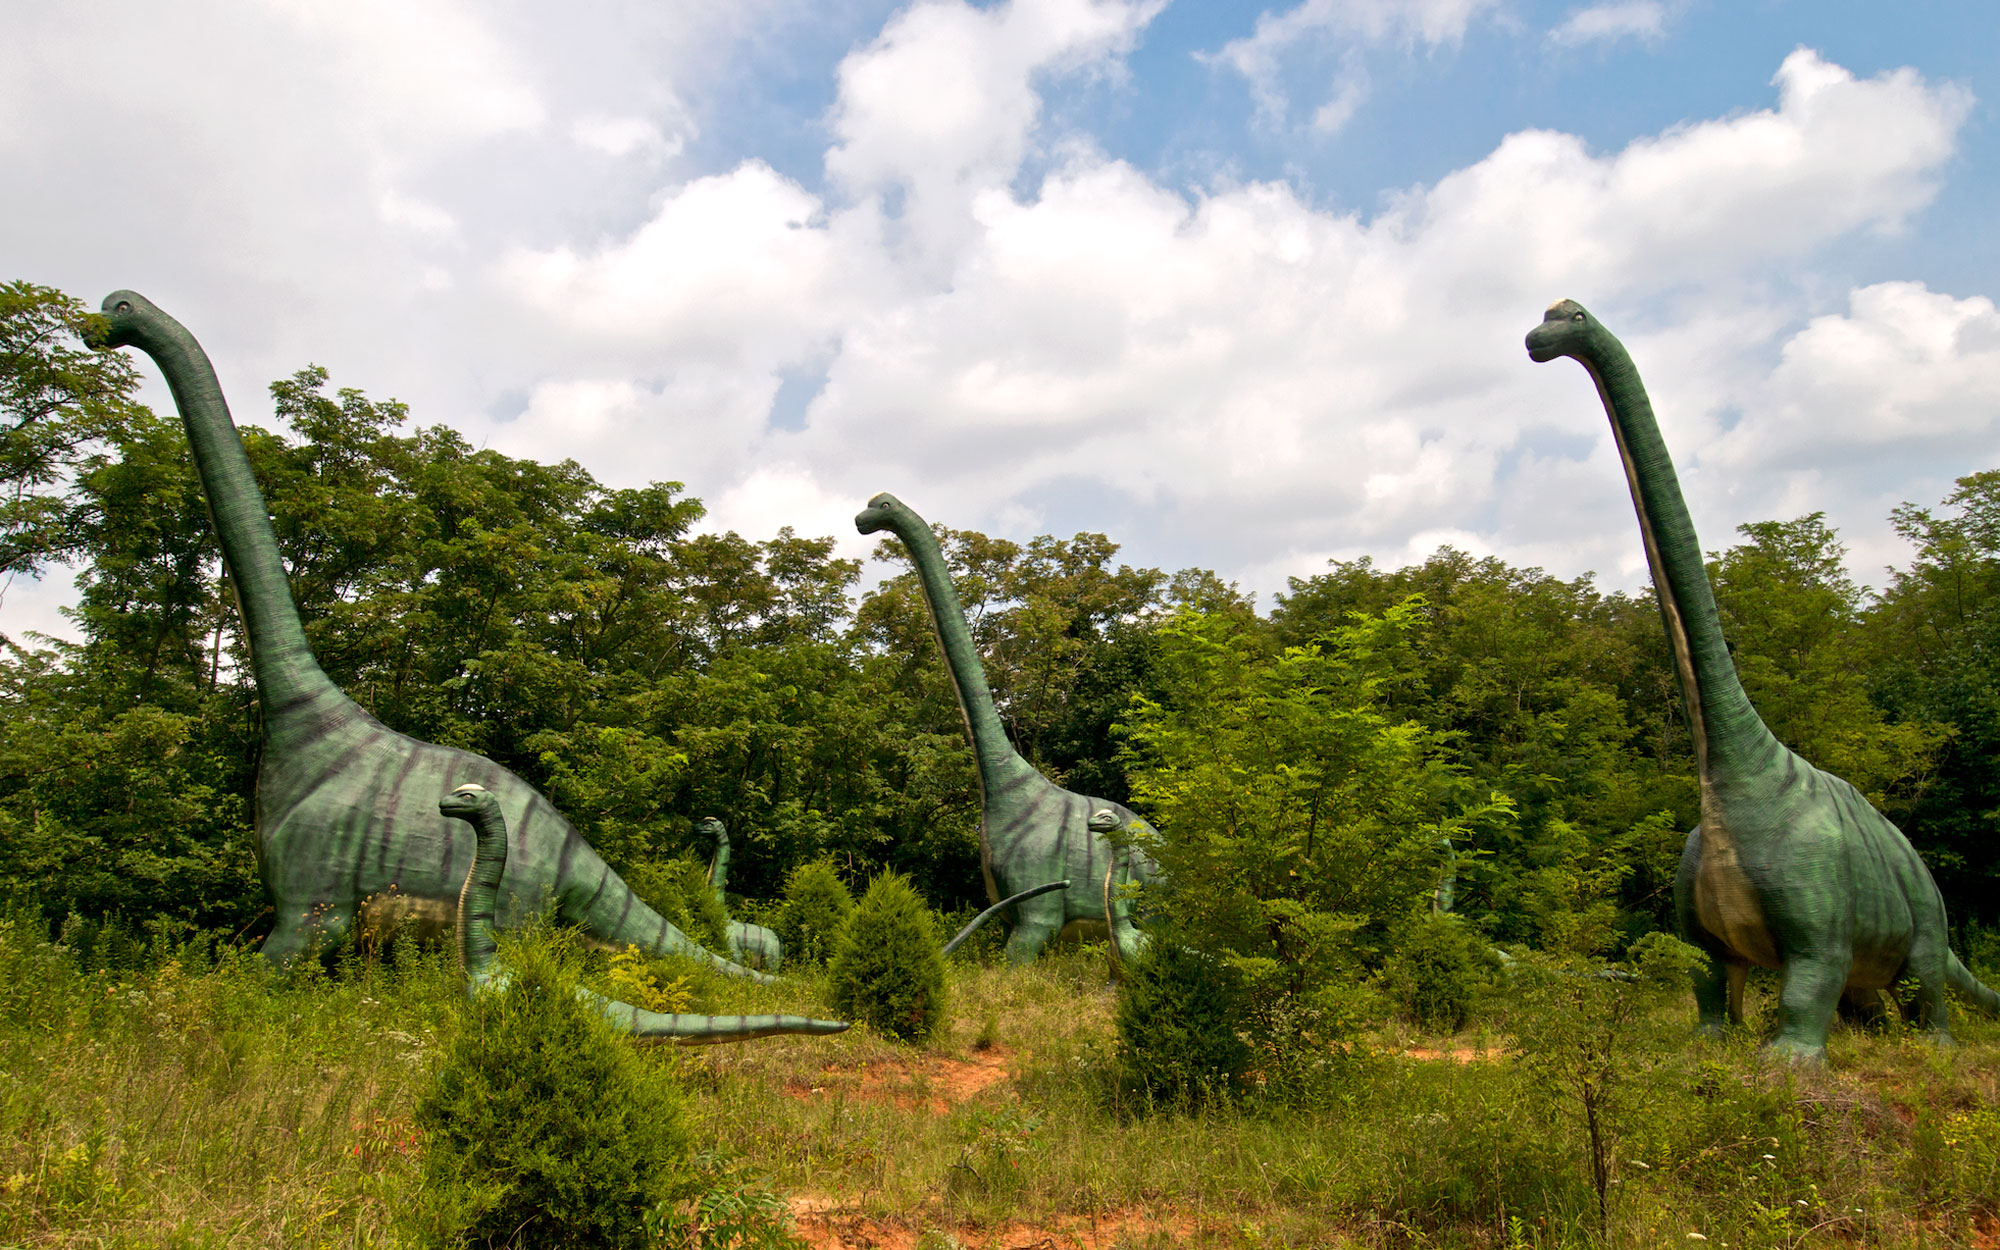 Weirdest Roadside Attractions: Kentucky: Dinosaur World